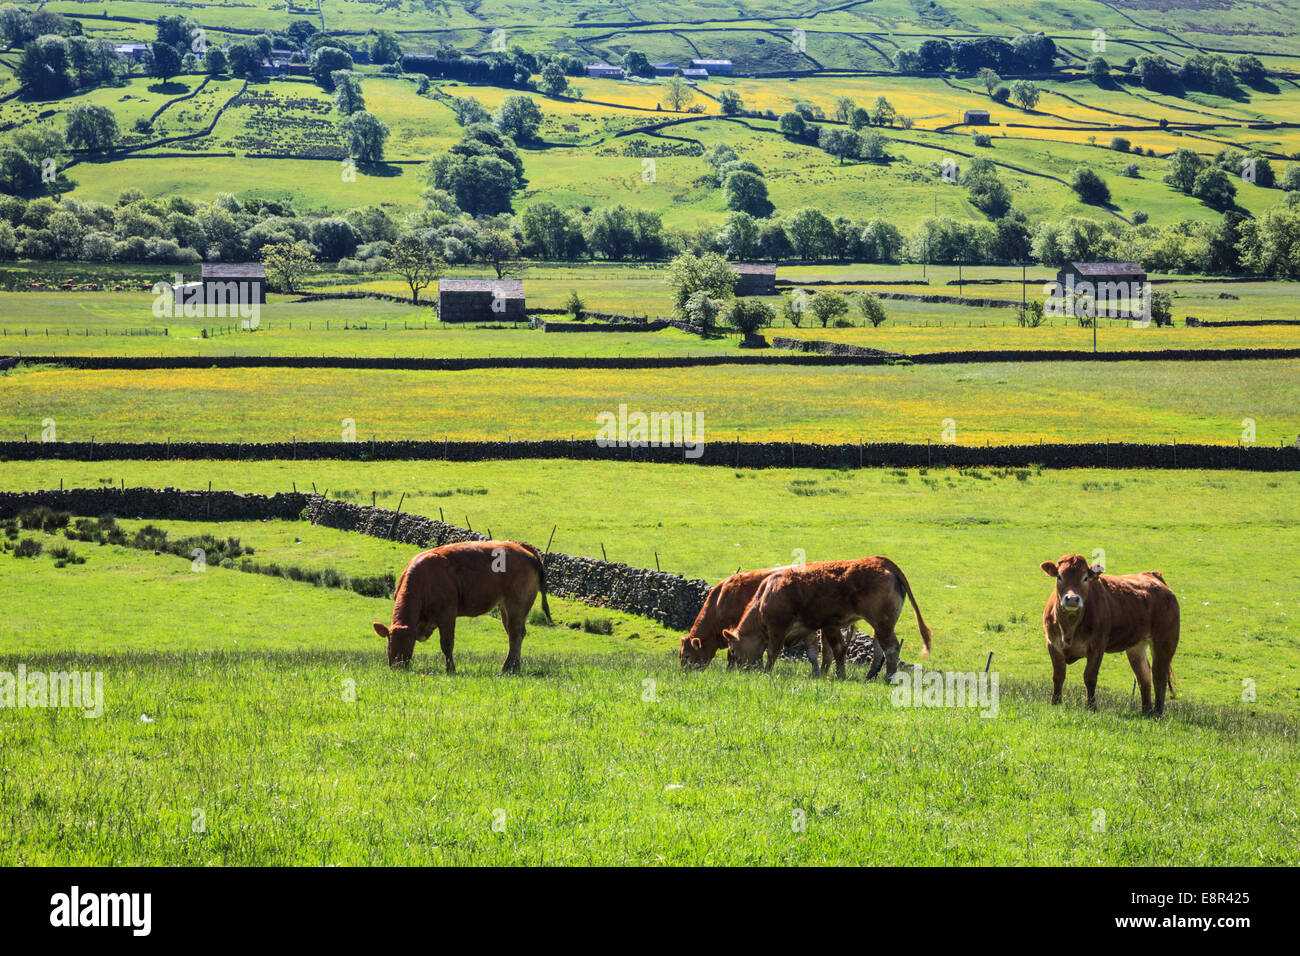 Cows in Raydale in the Yorkshire Dales National Park. - Stock Image